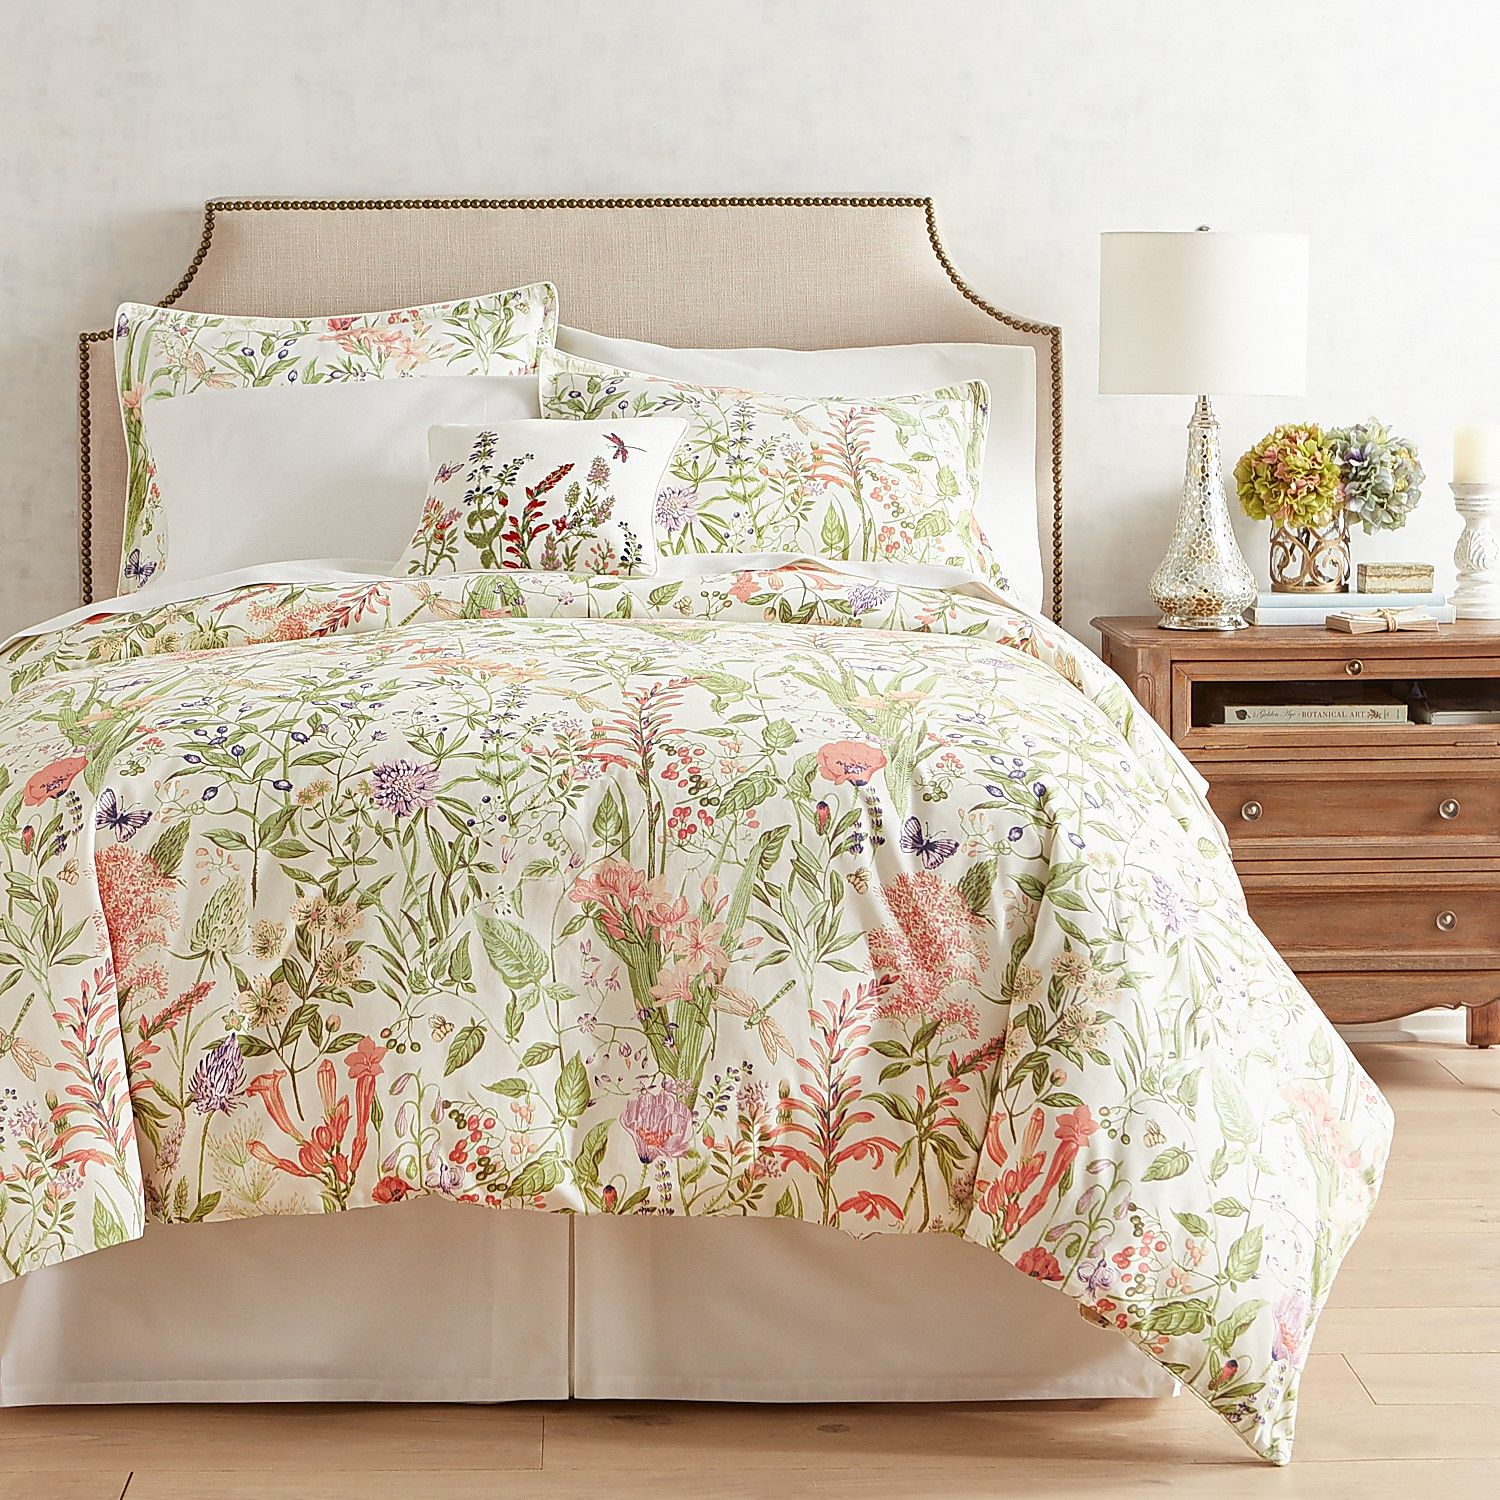 Wildflower Duvet Cover & Sham